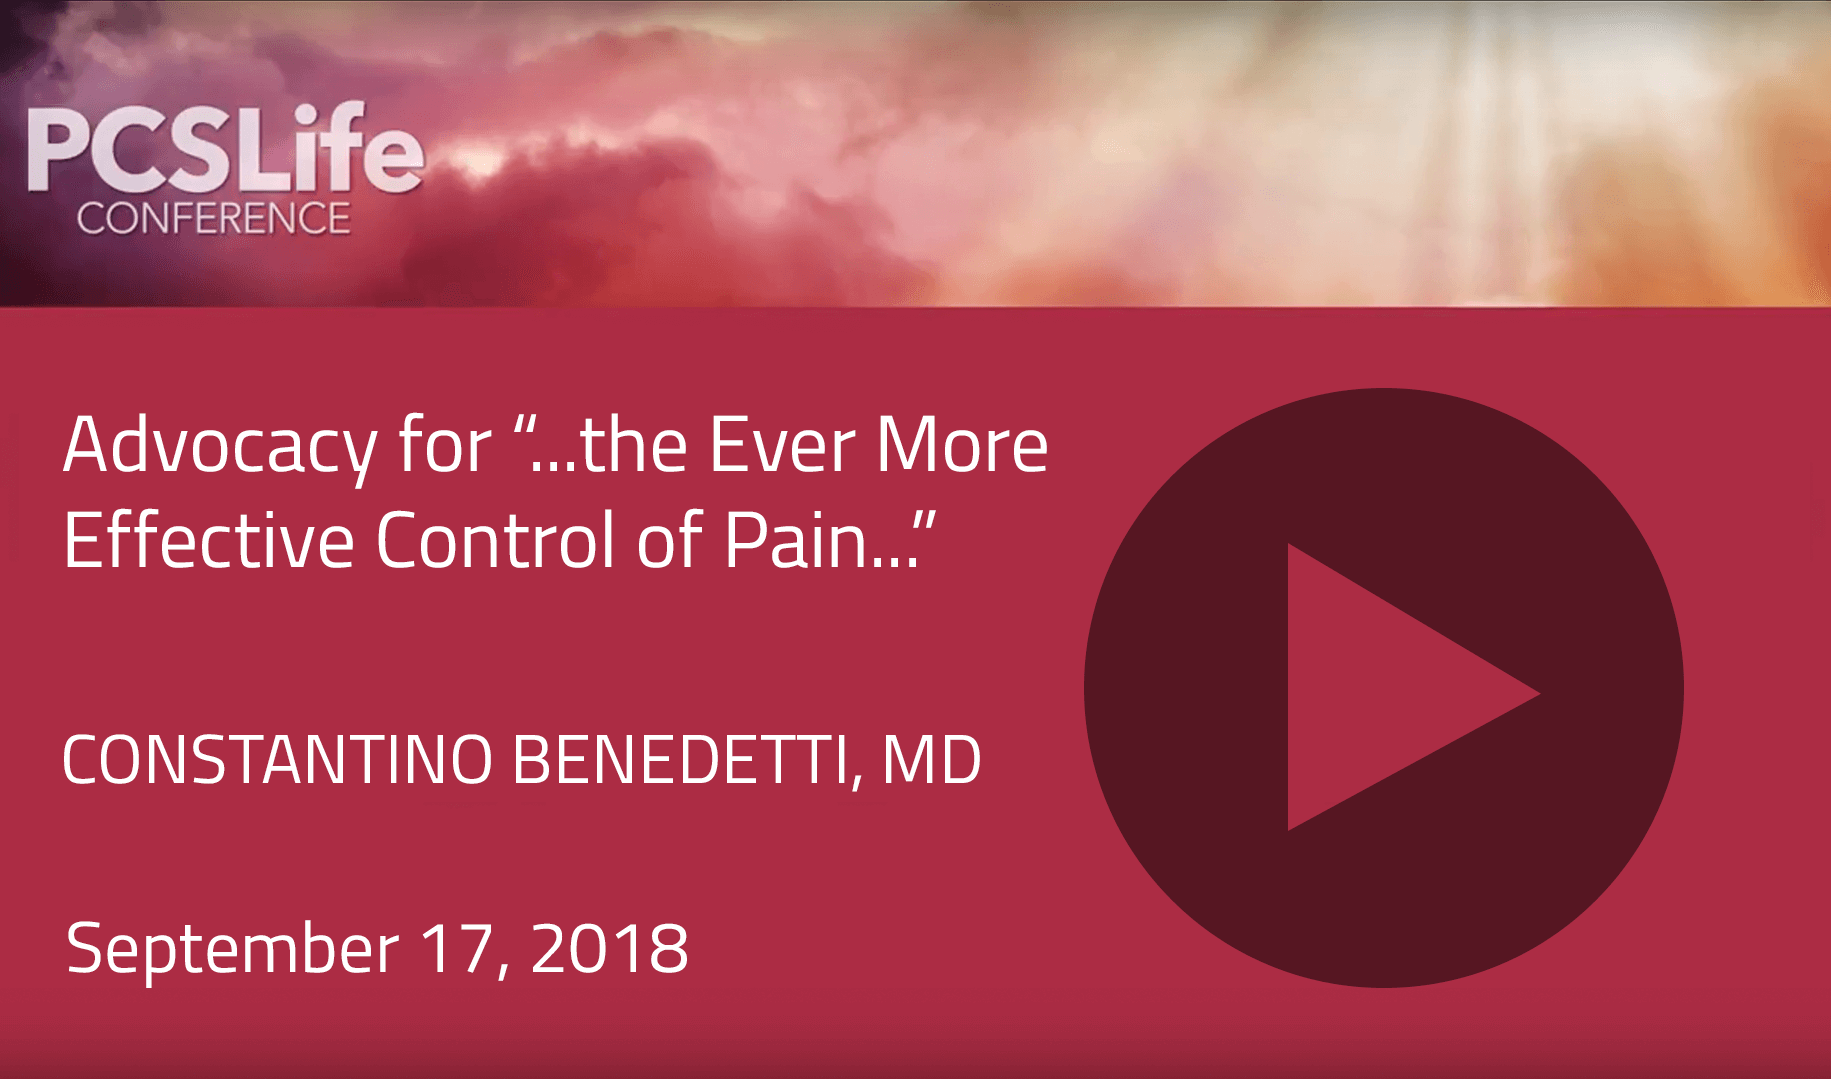 "Advocacy for ""...the Ever More Effective Control of Pain..."" by Constantino Benedetti"